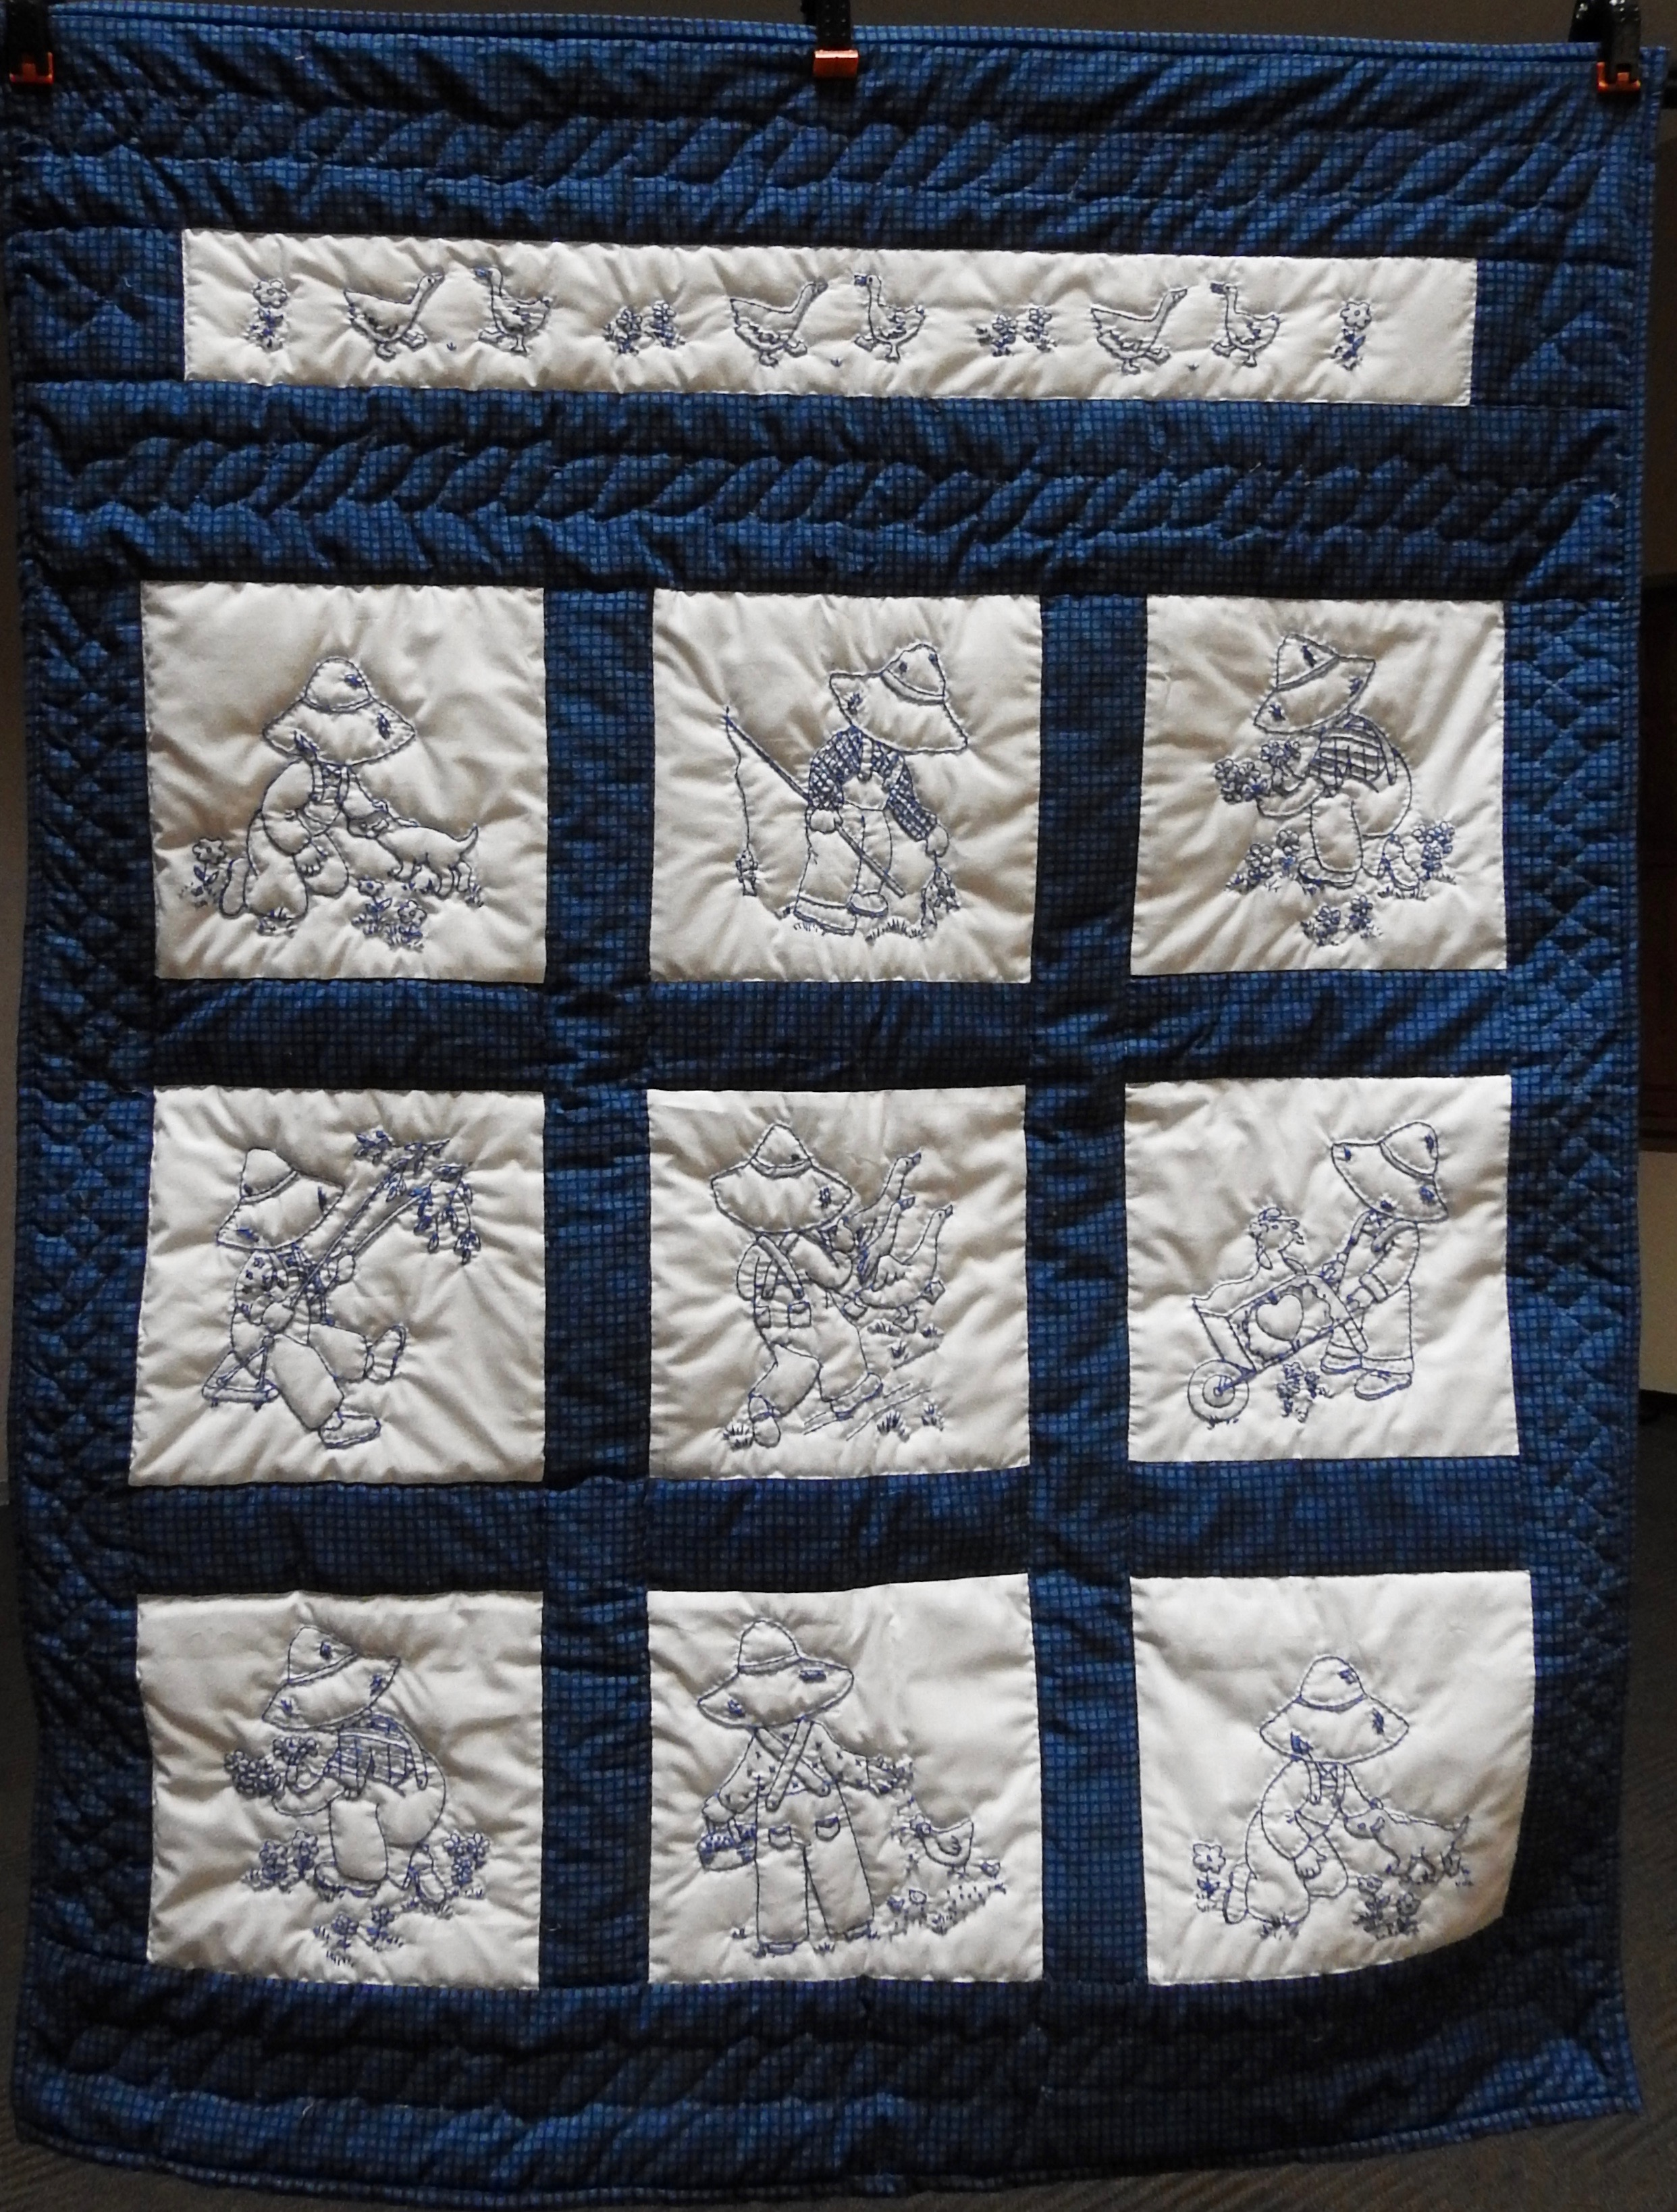 Overall Sam in Blue, Pieced & Embroidered, Hand Quilted by Susie Schlabach, donated Anonymously, 37 x 46